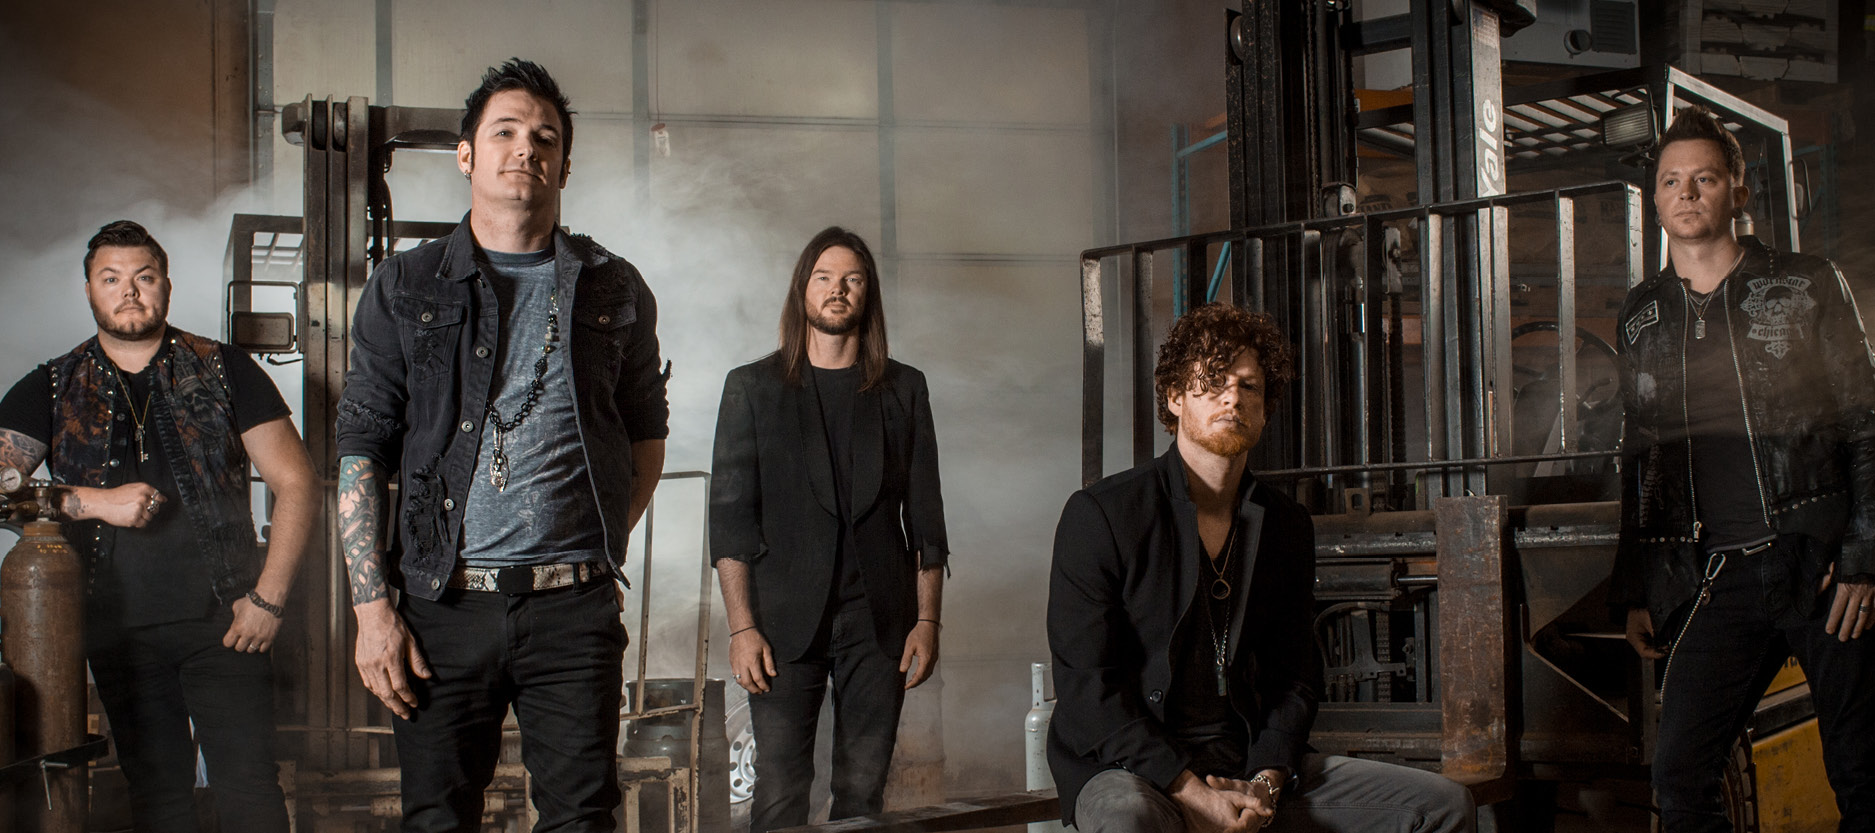 Hinder at the Lakeside Event Center